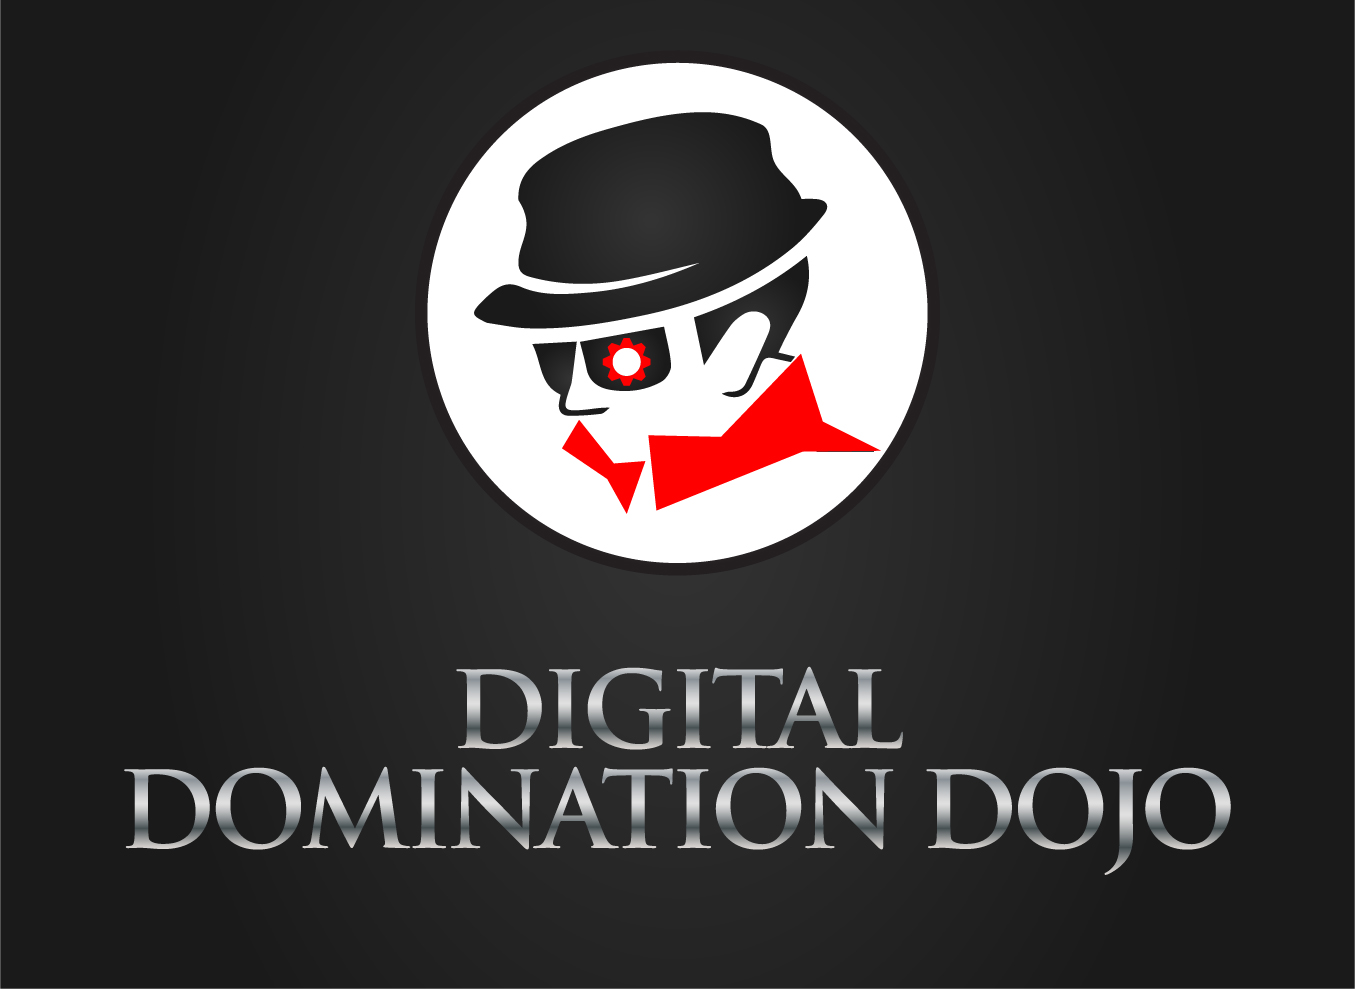 Digital Domination Dojo